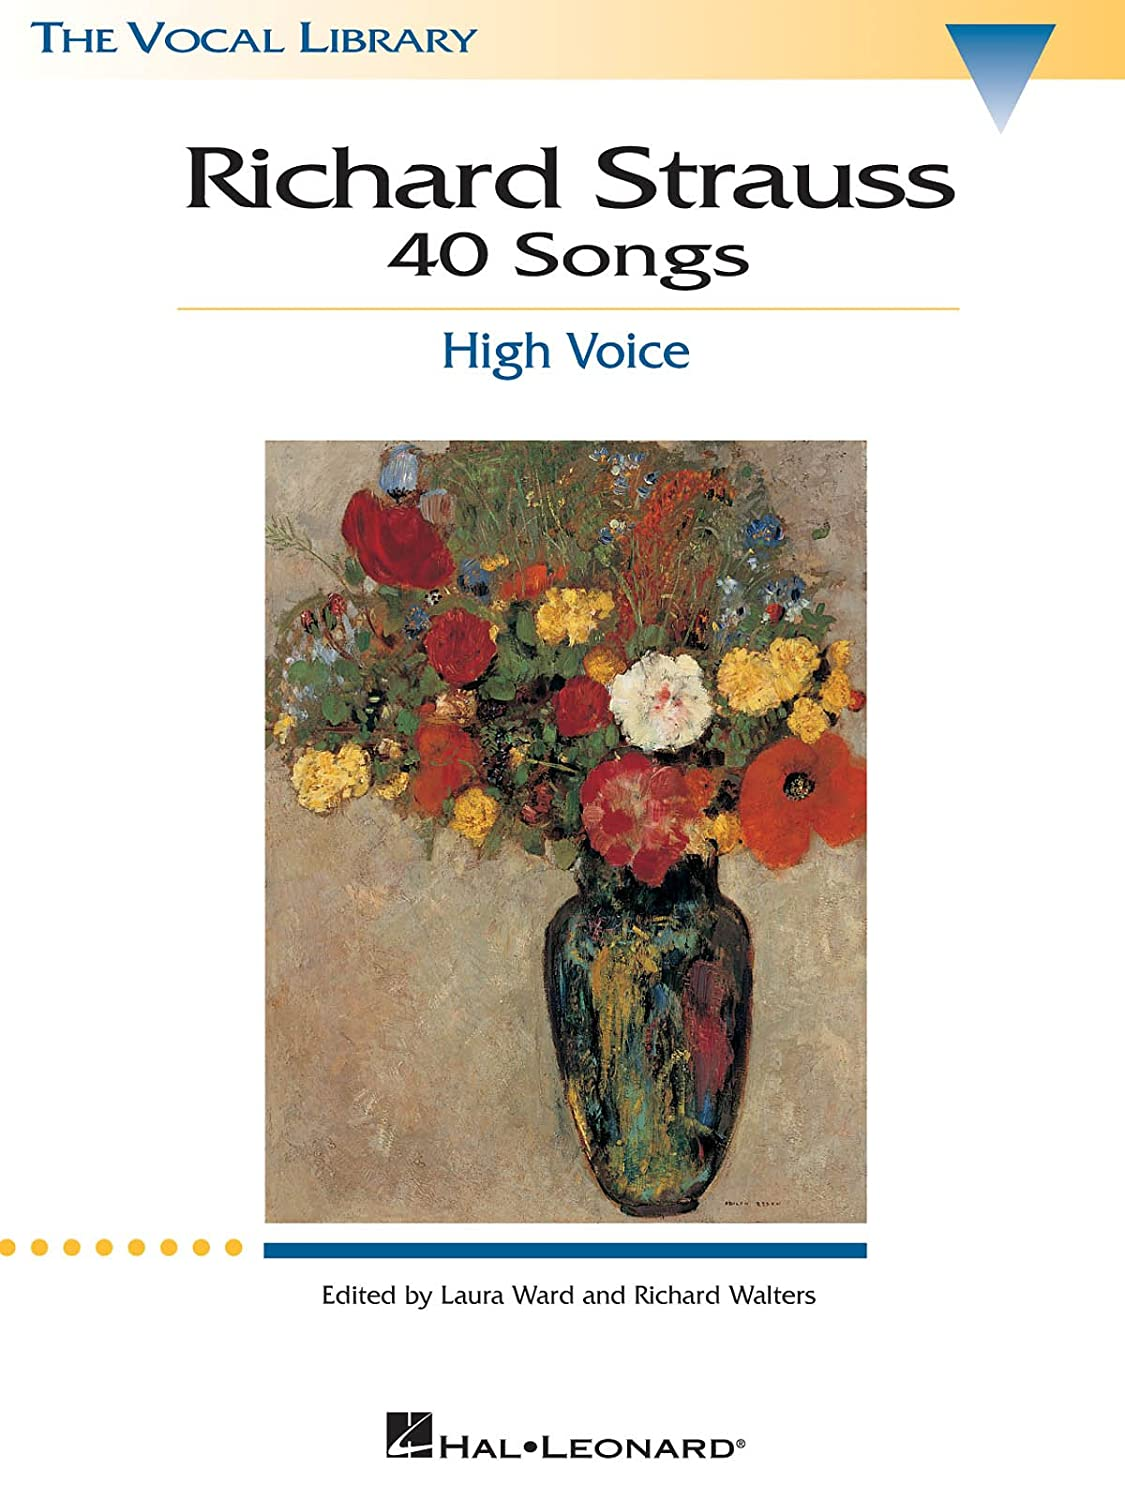 Richard Strauss: 40 Songs - High Voice - The Vocal Library: Musical  Instruments, Stage & Studio - Amazon.ca